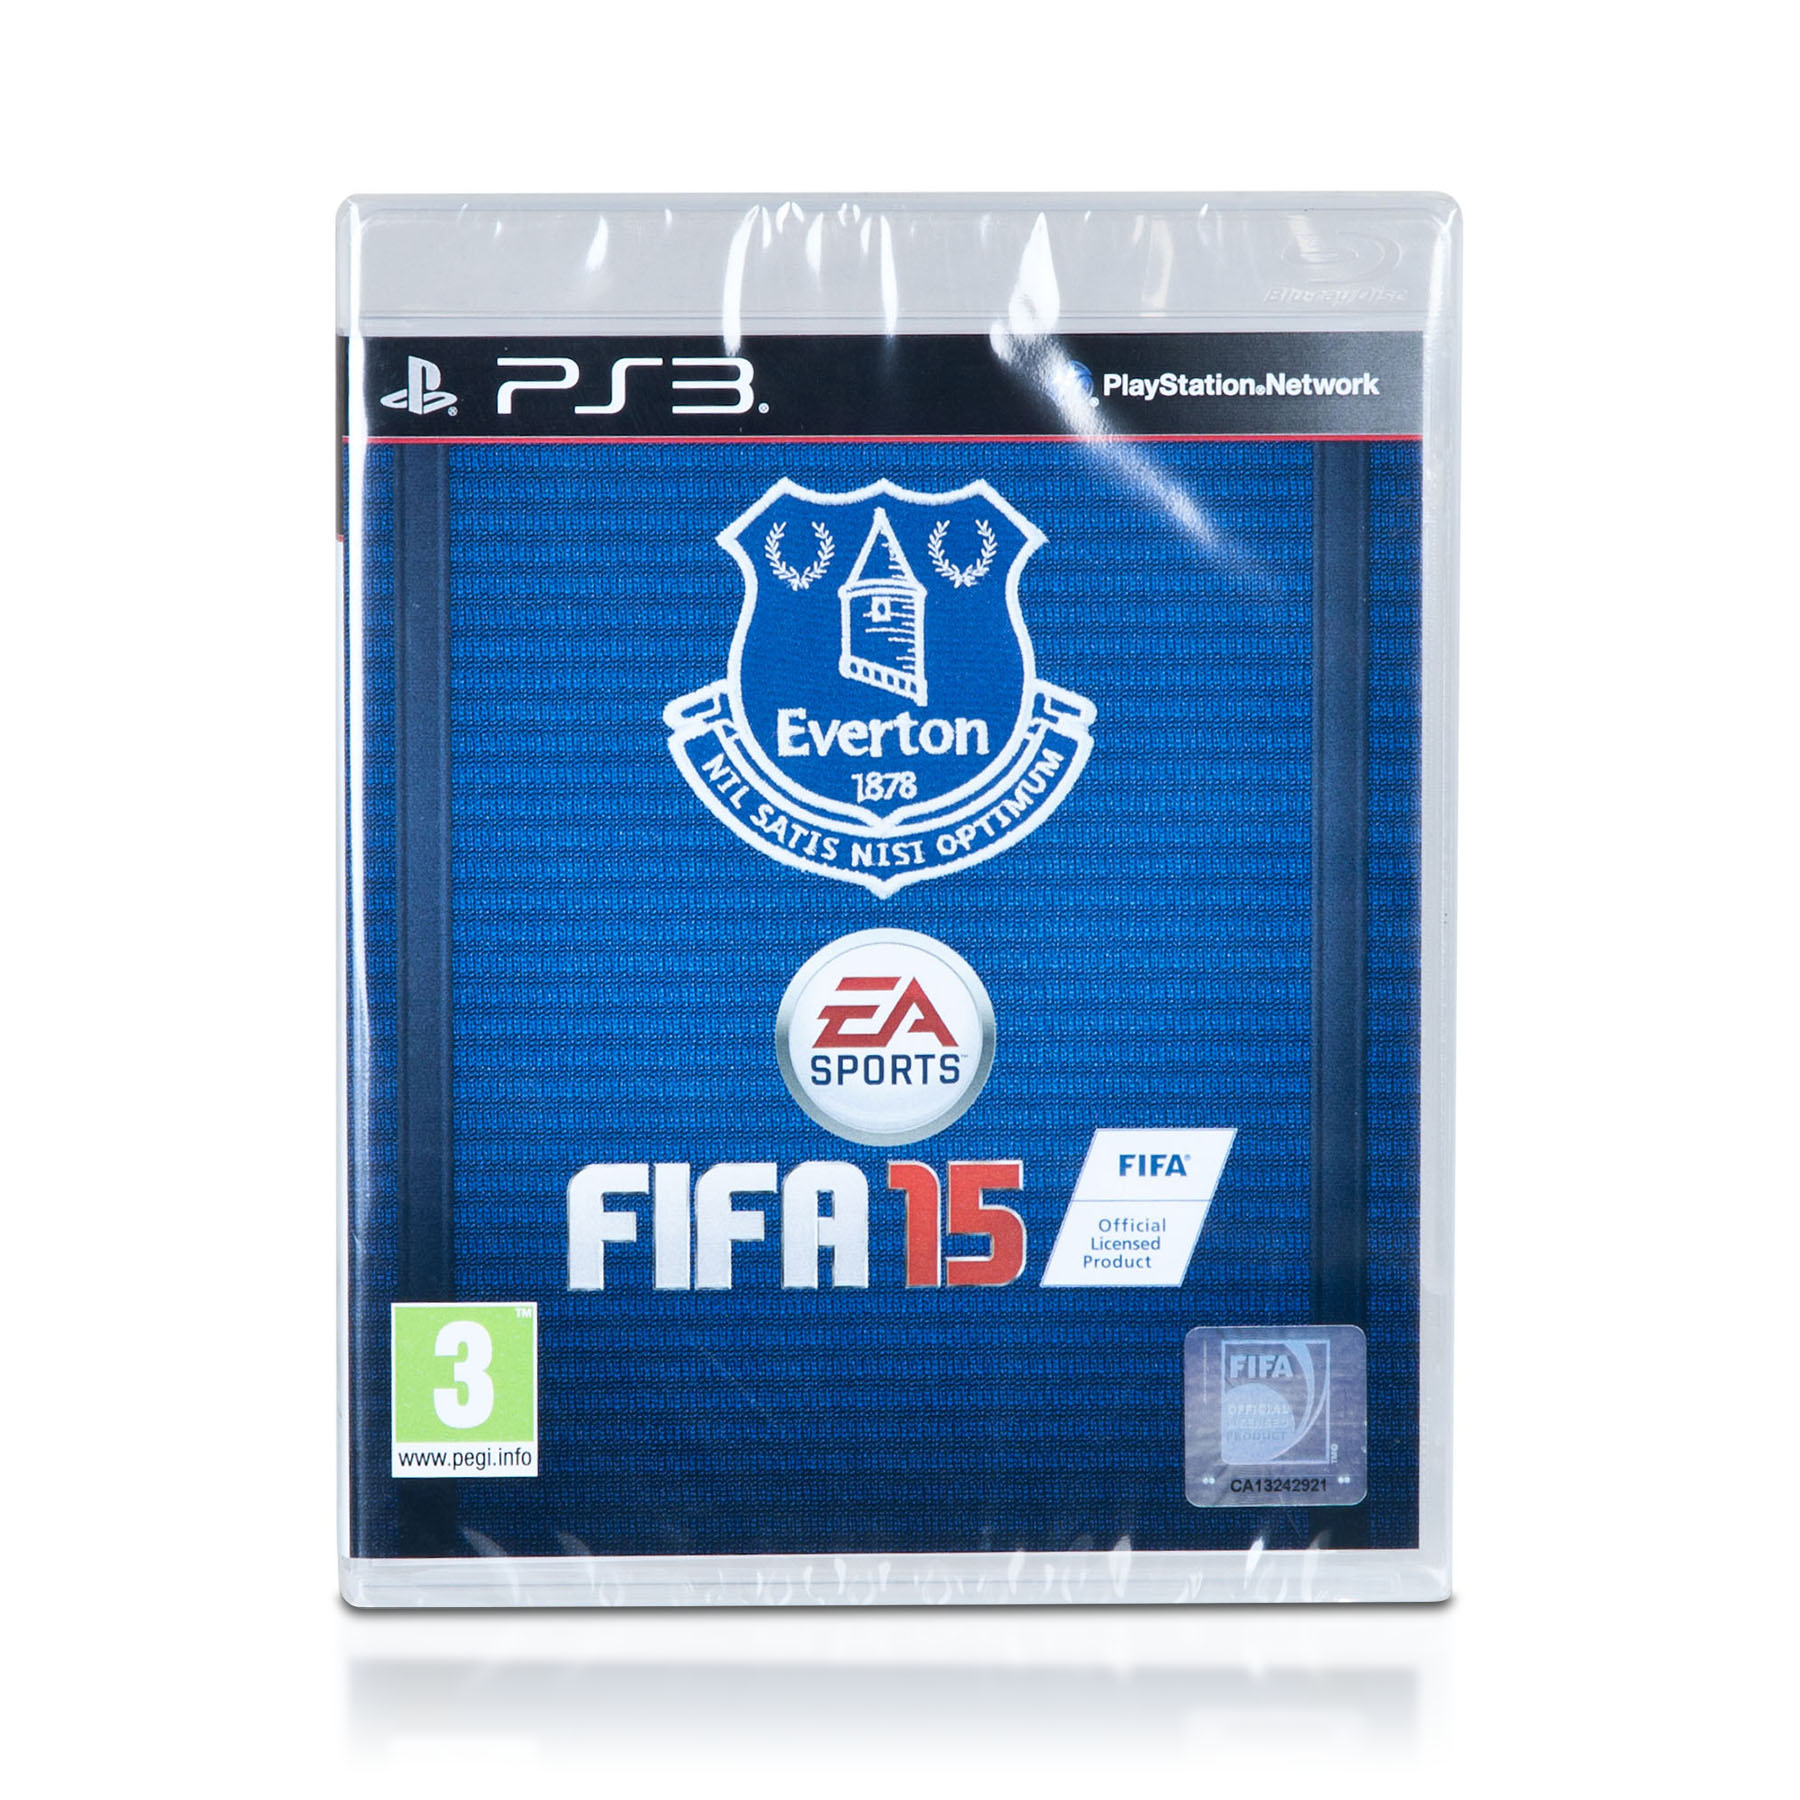 Everton Fifa 15 PS3 - Exclusive Cover